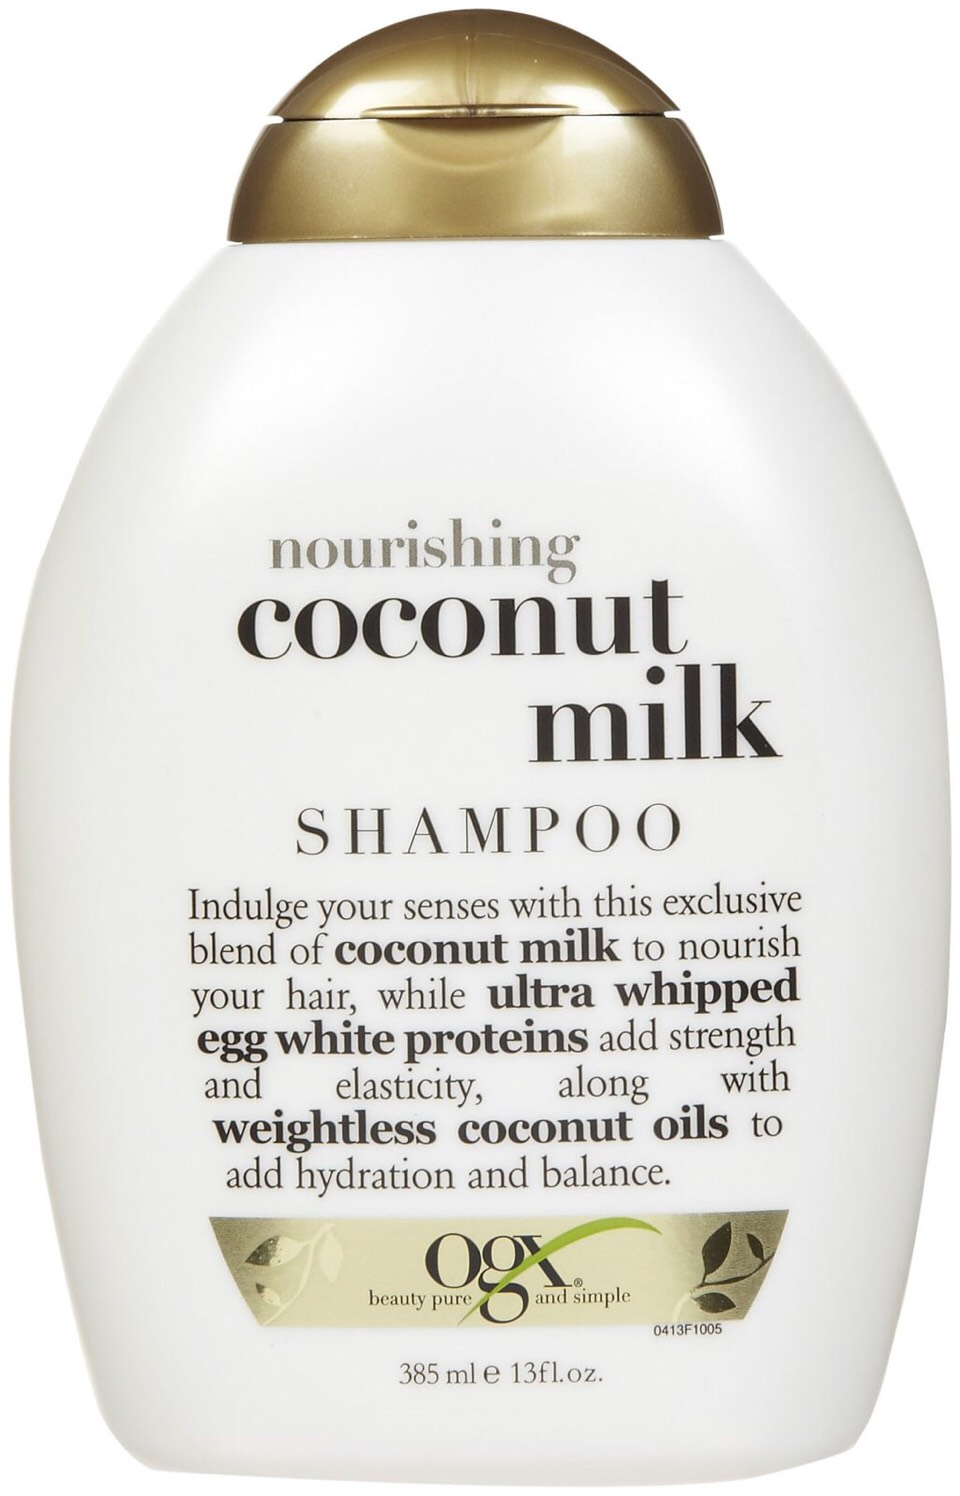 This is the shampoo i use-/- it was proteins to make your hair grow